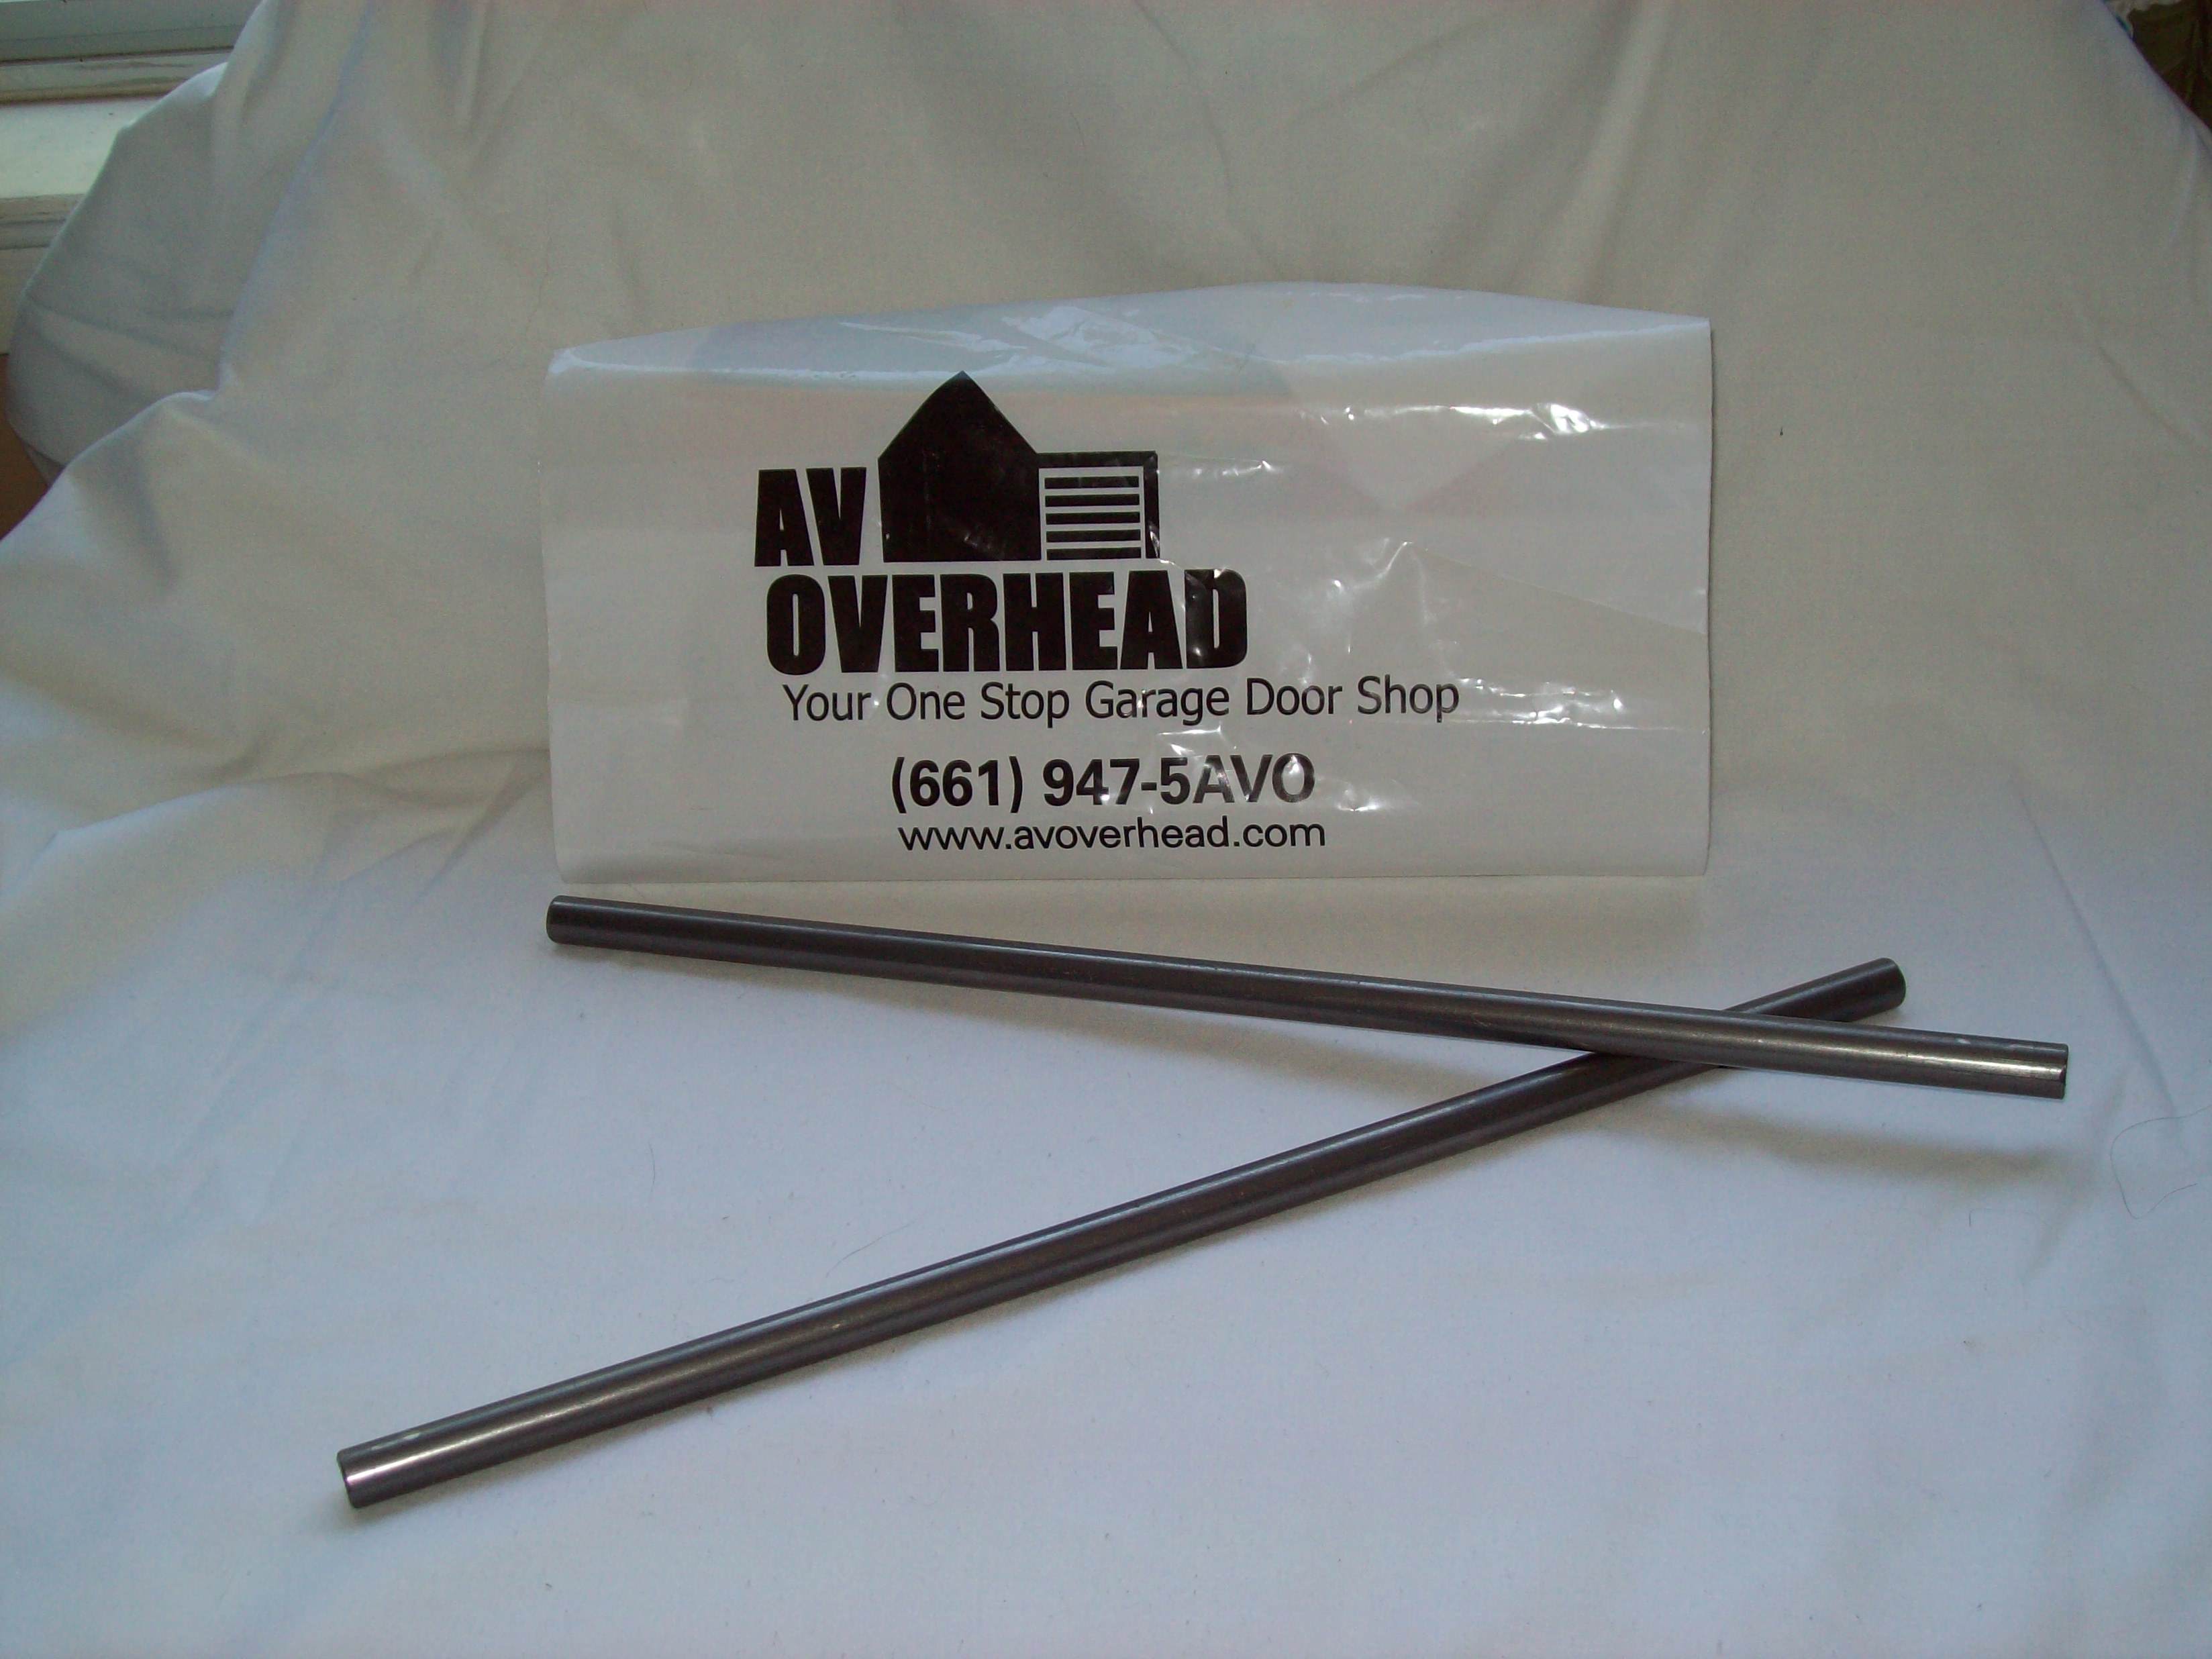 Torsion Spring Winding Bars 12 Inch & Tools : AV OVERHEAD.com -  Garage Door Openers Garage Door Parts ...